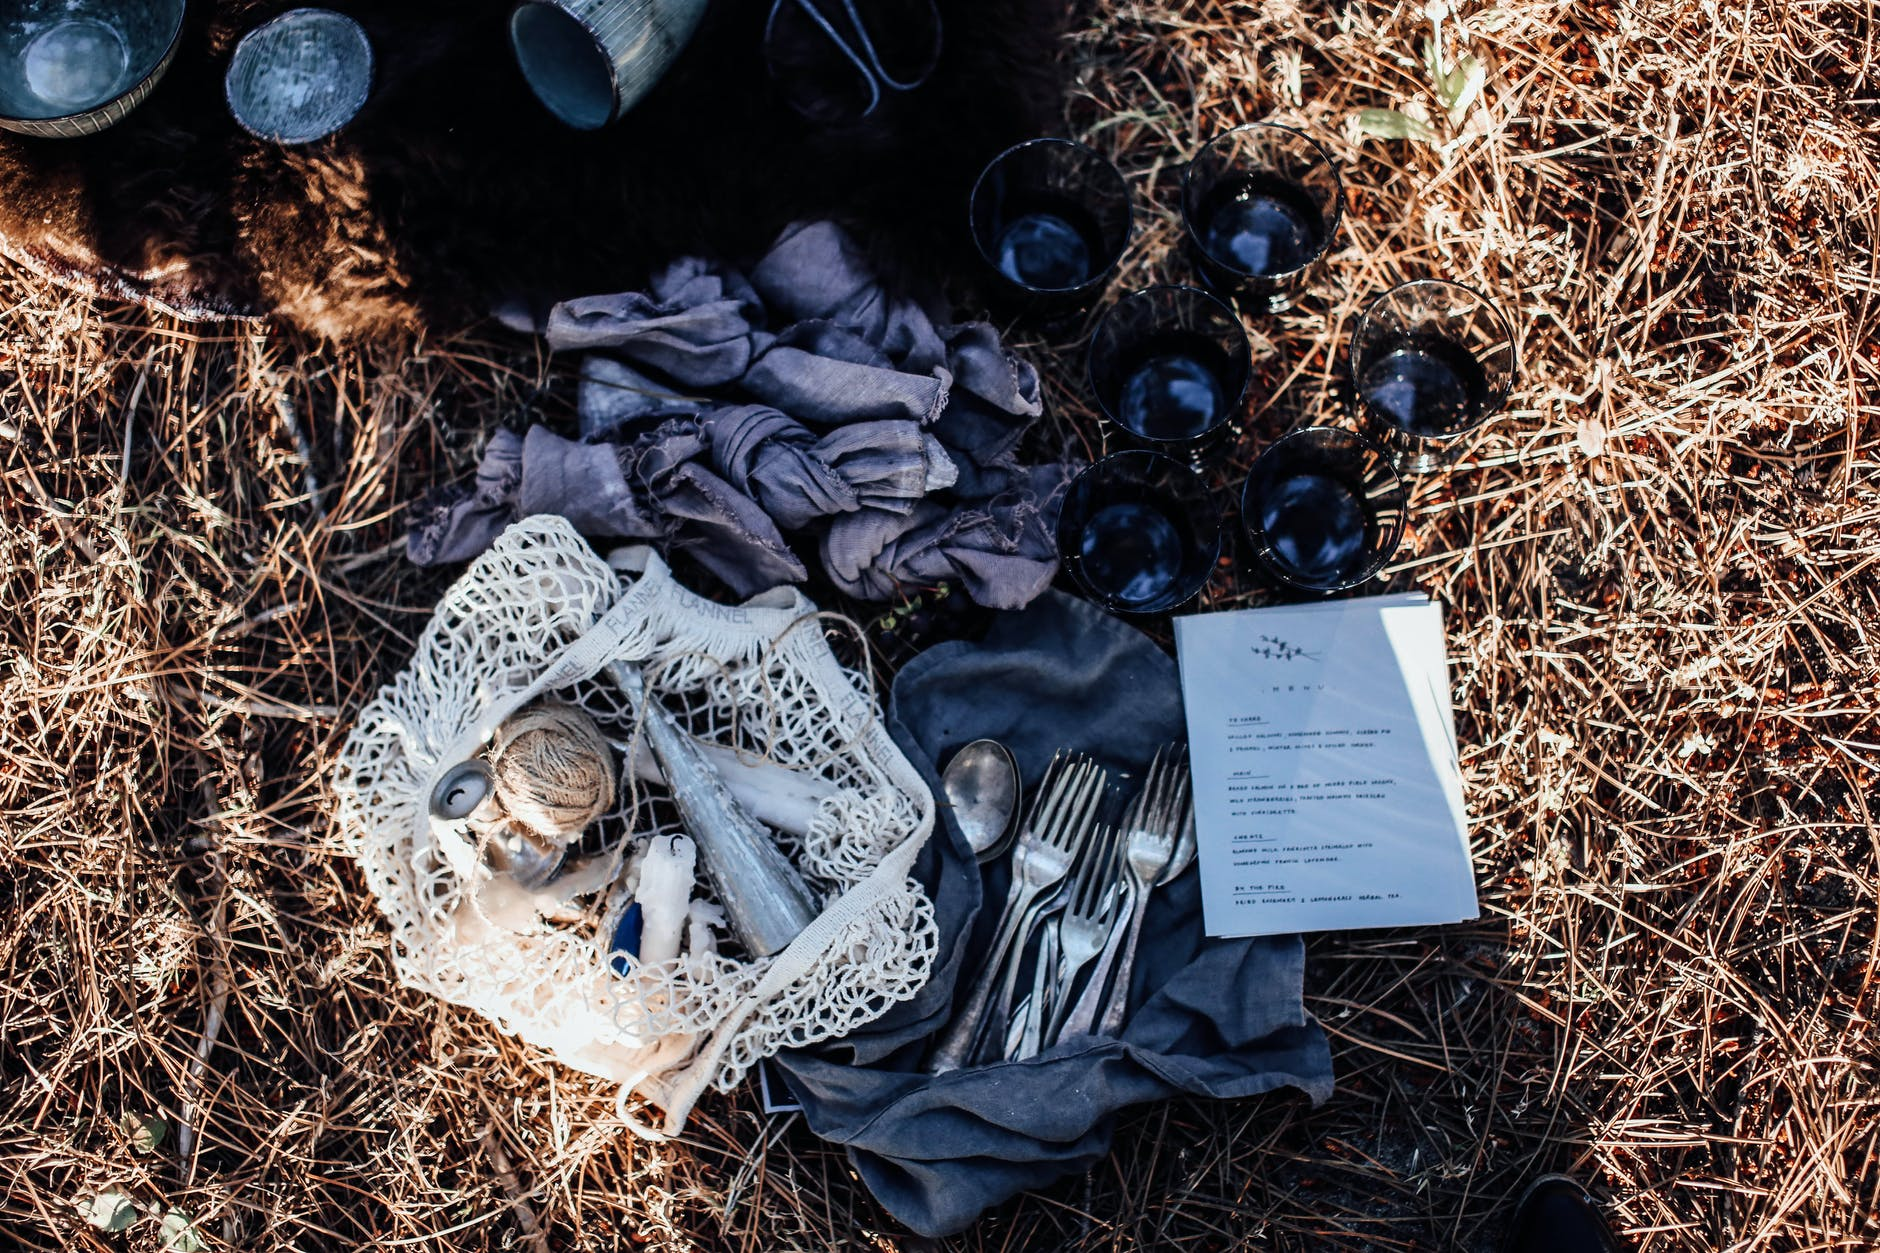 napkins and reusable bag near cutlery and glasses on grass